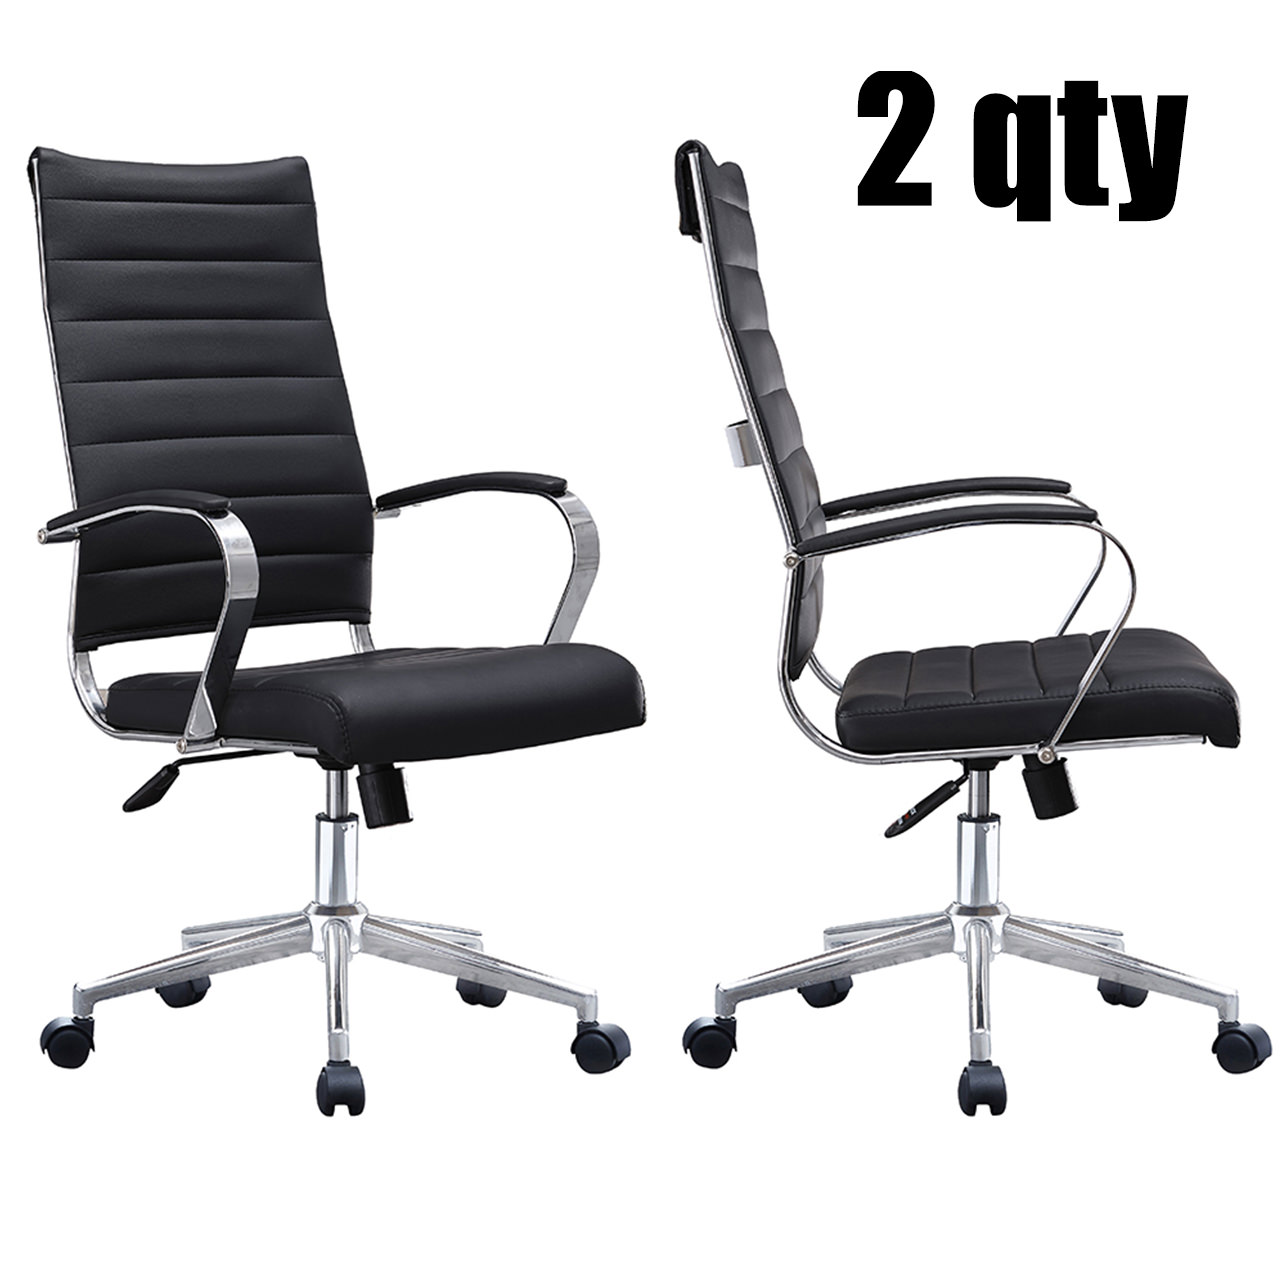 2xhome Set of 2 - Black- Modern High Back Tall Ribbed PU Leather Swivel Tilt Adjustable Chair Designer Boss Executive Management Manager Office Conference Room Work Task Computer